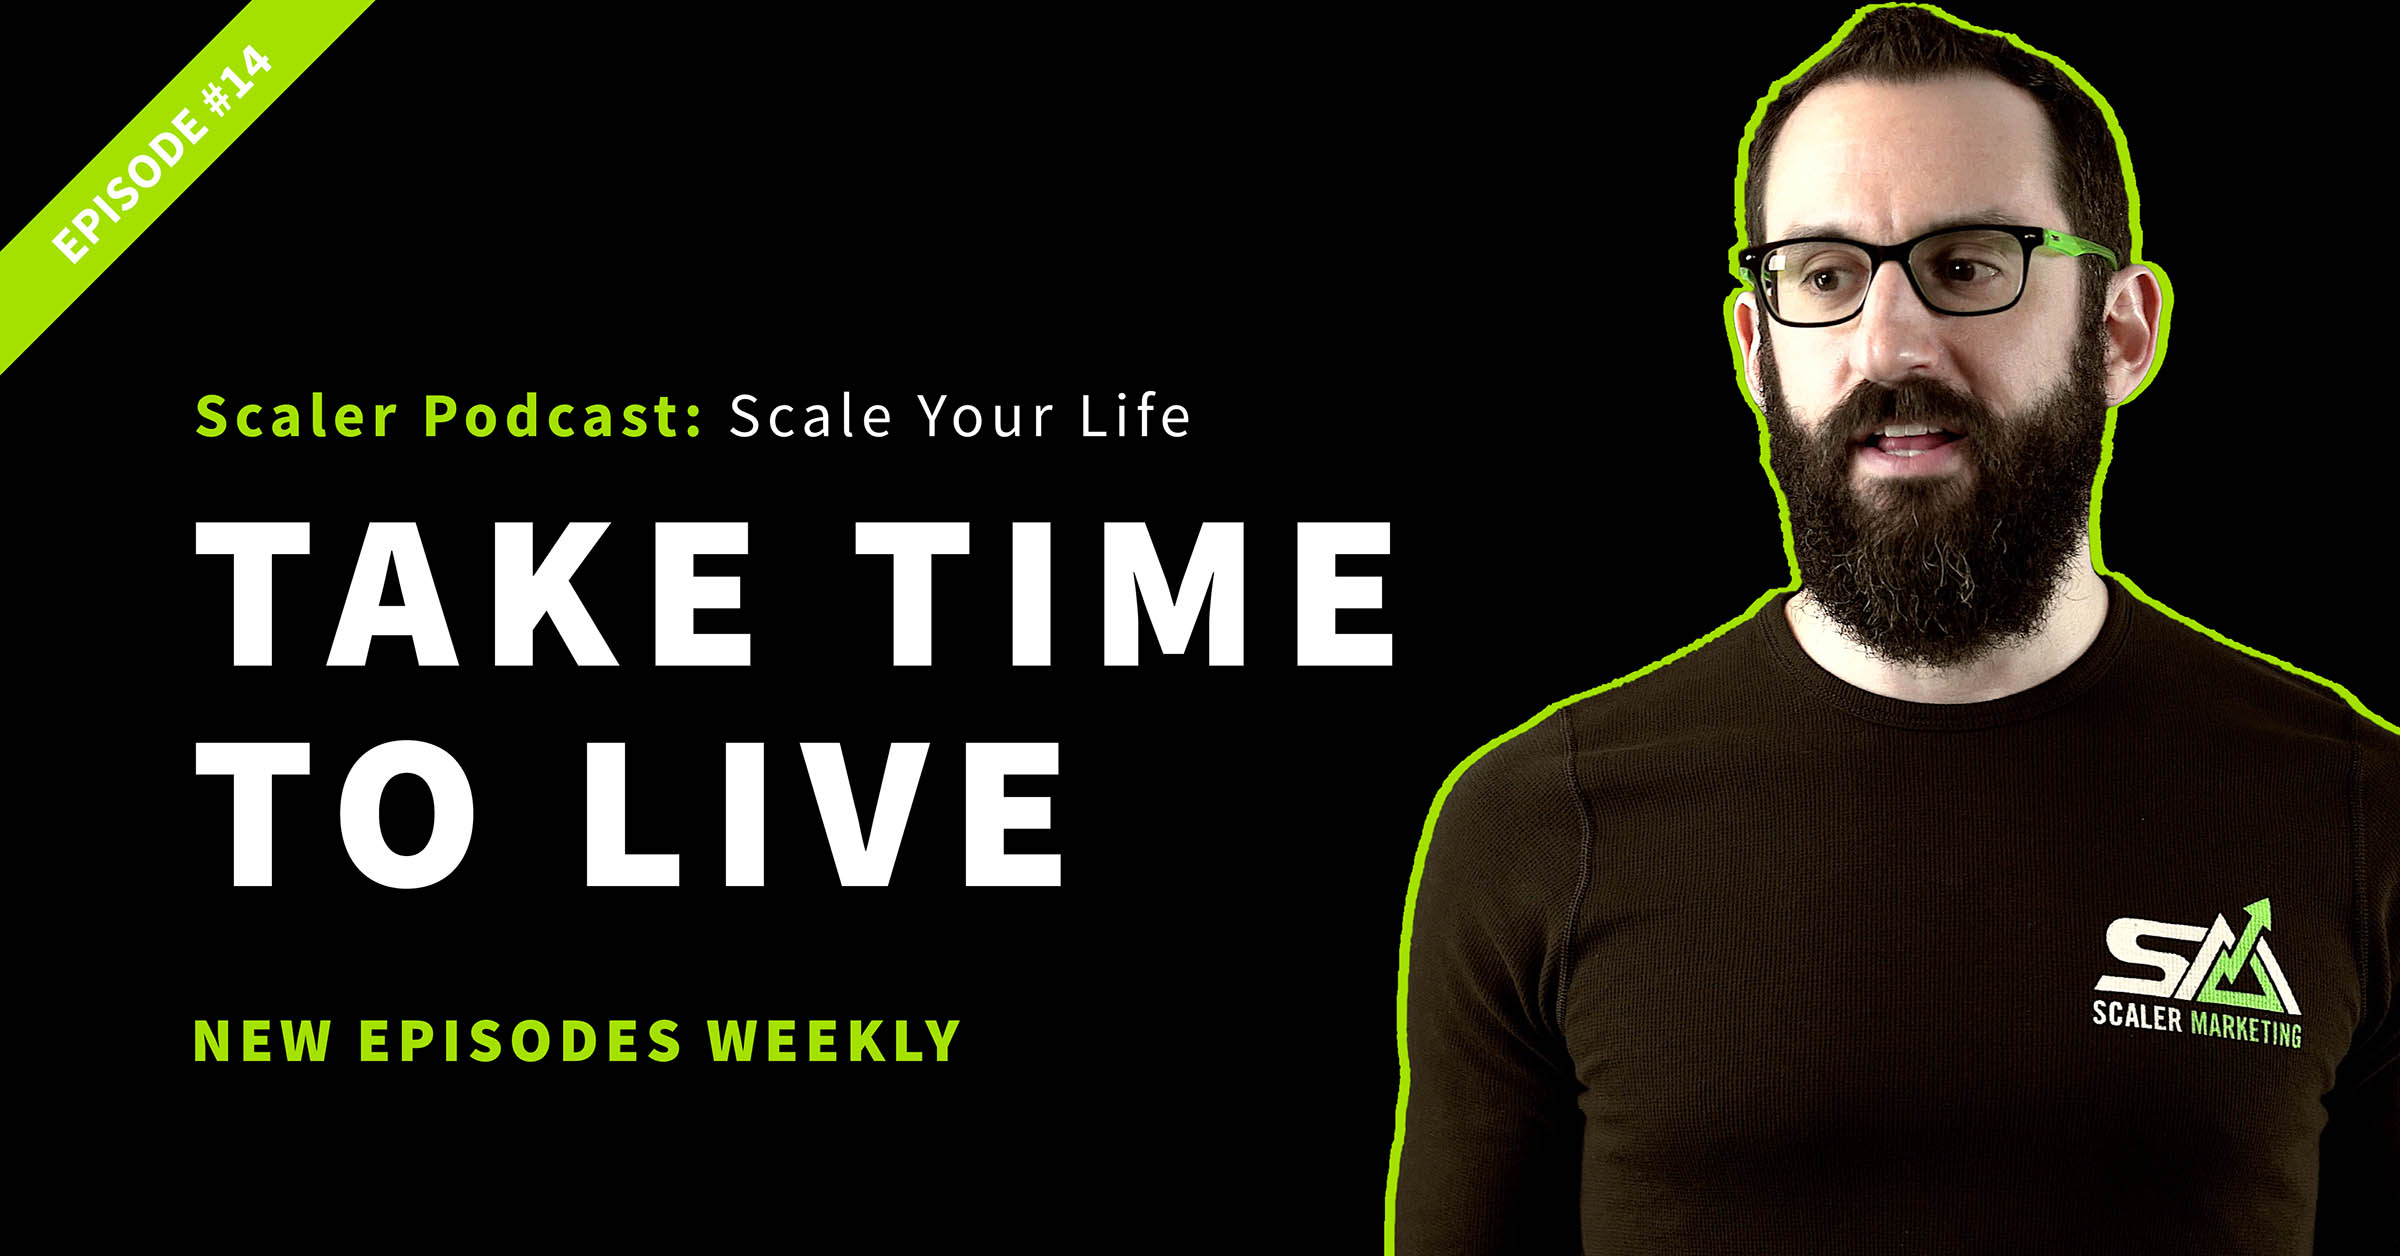 Episode 14 - Take Time To Live